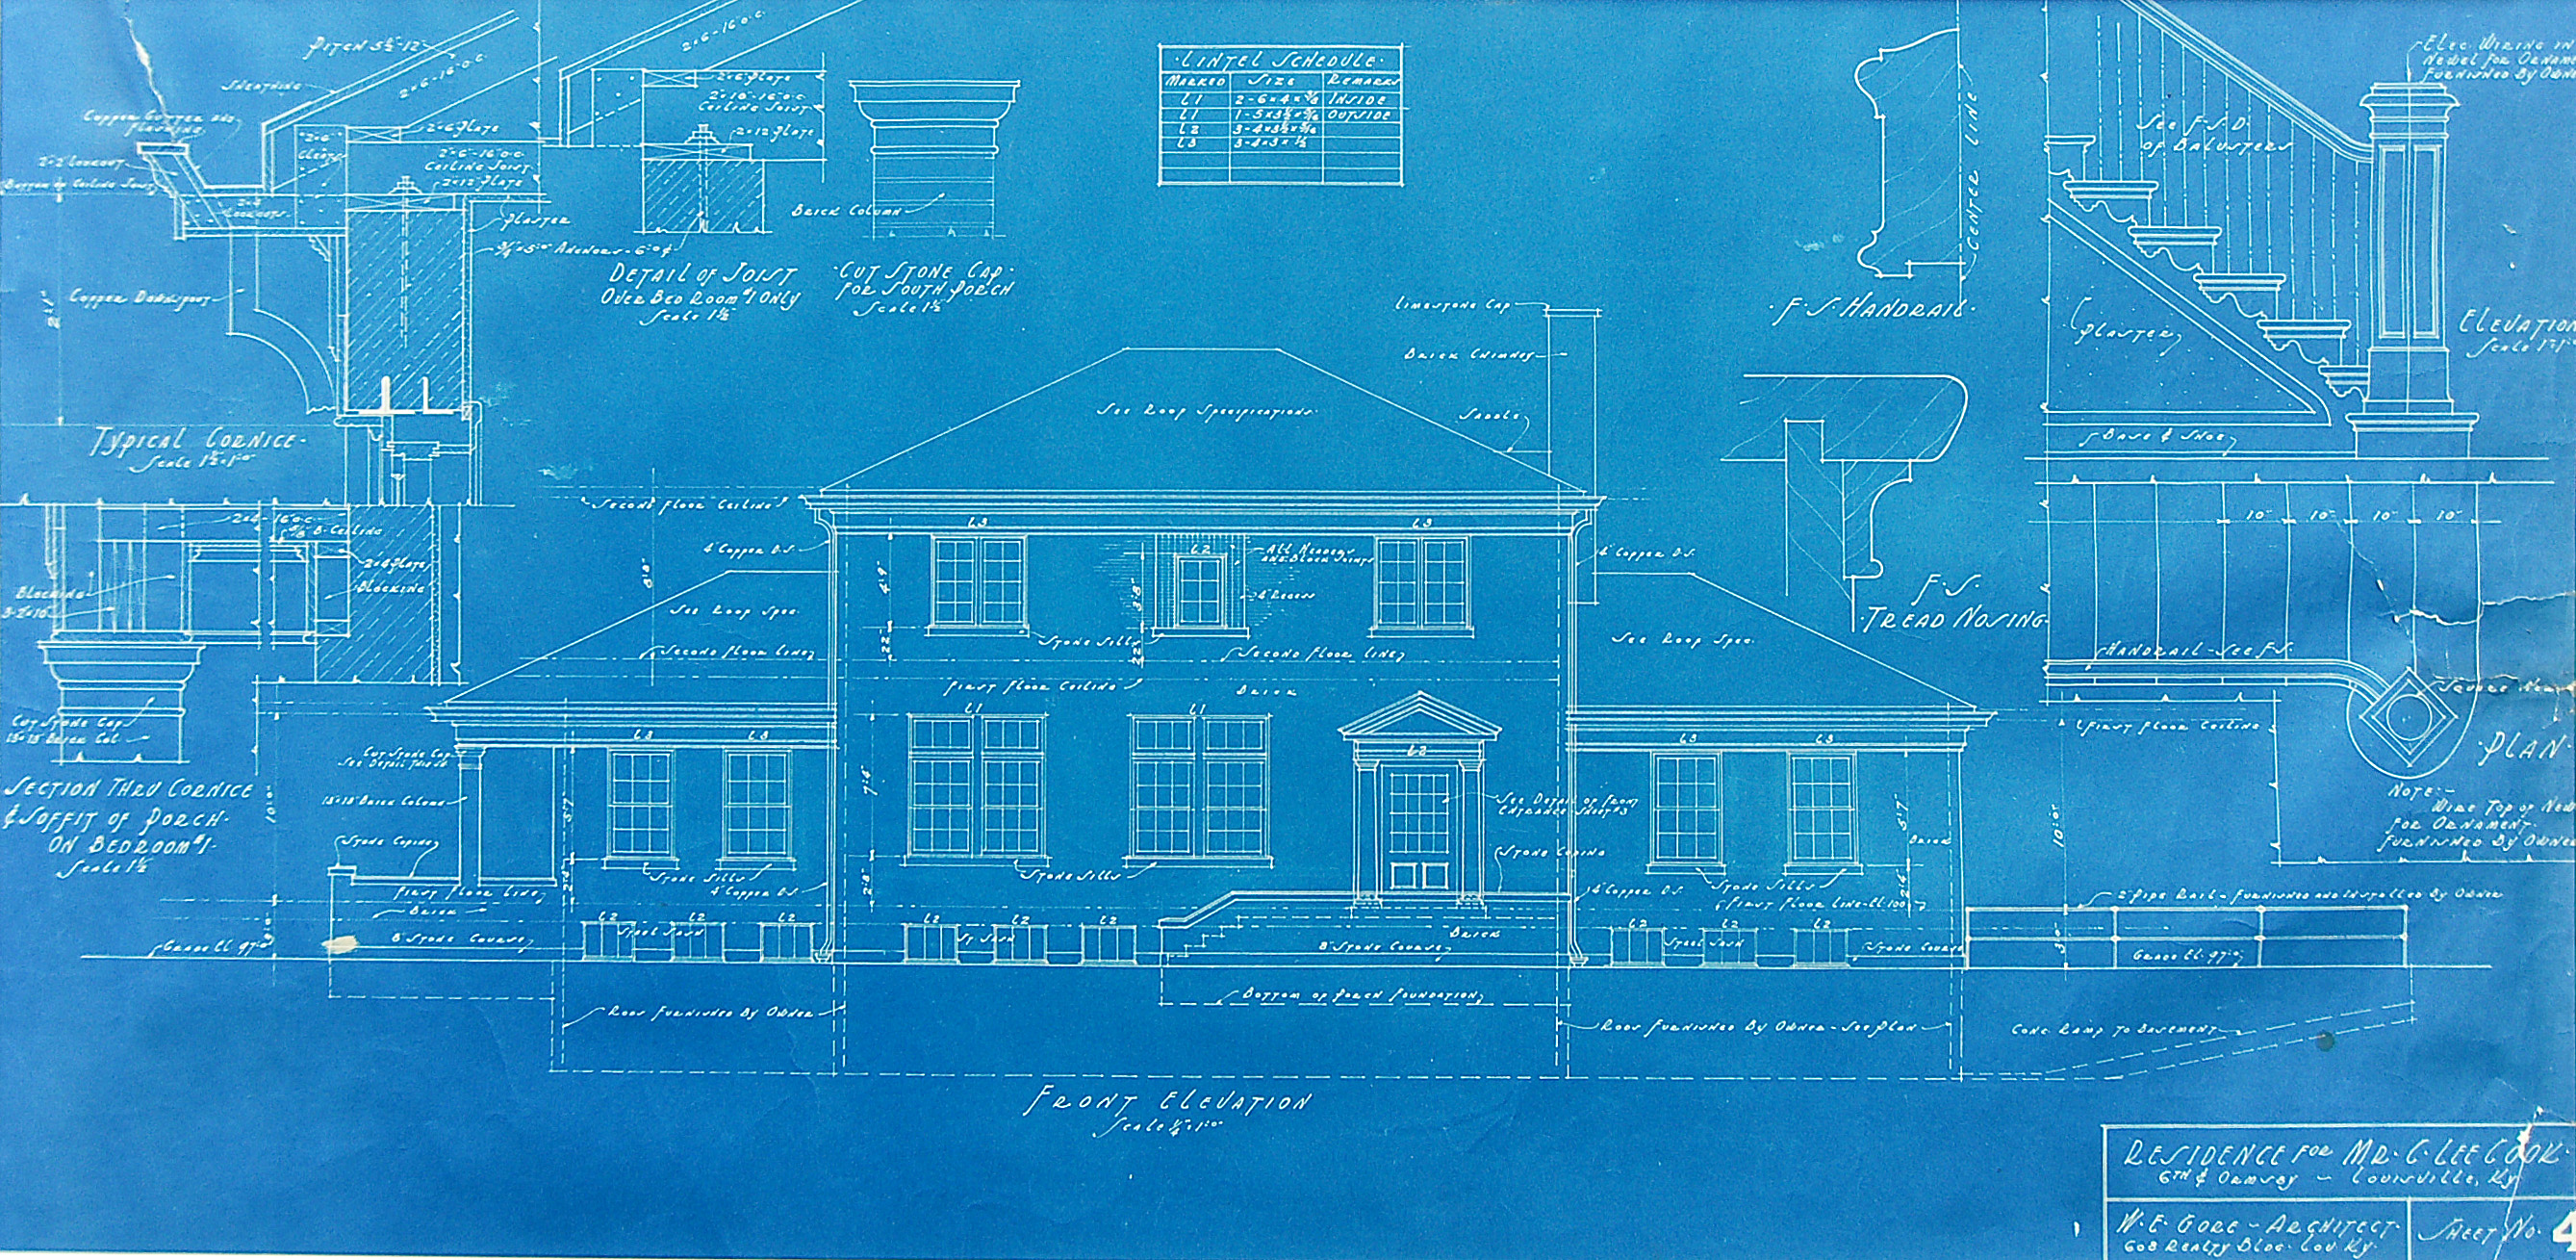 1244 sixth street the blueprints Blueprints for my house